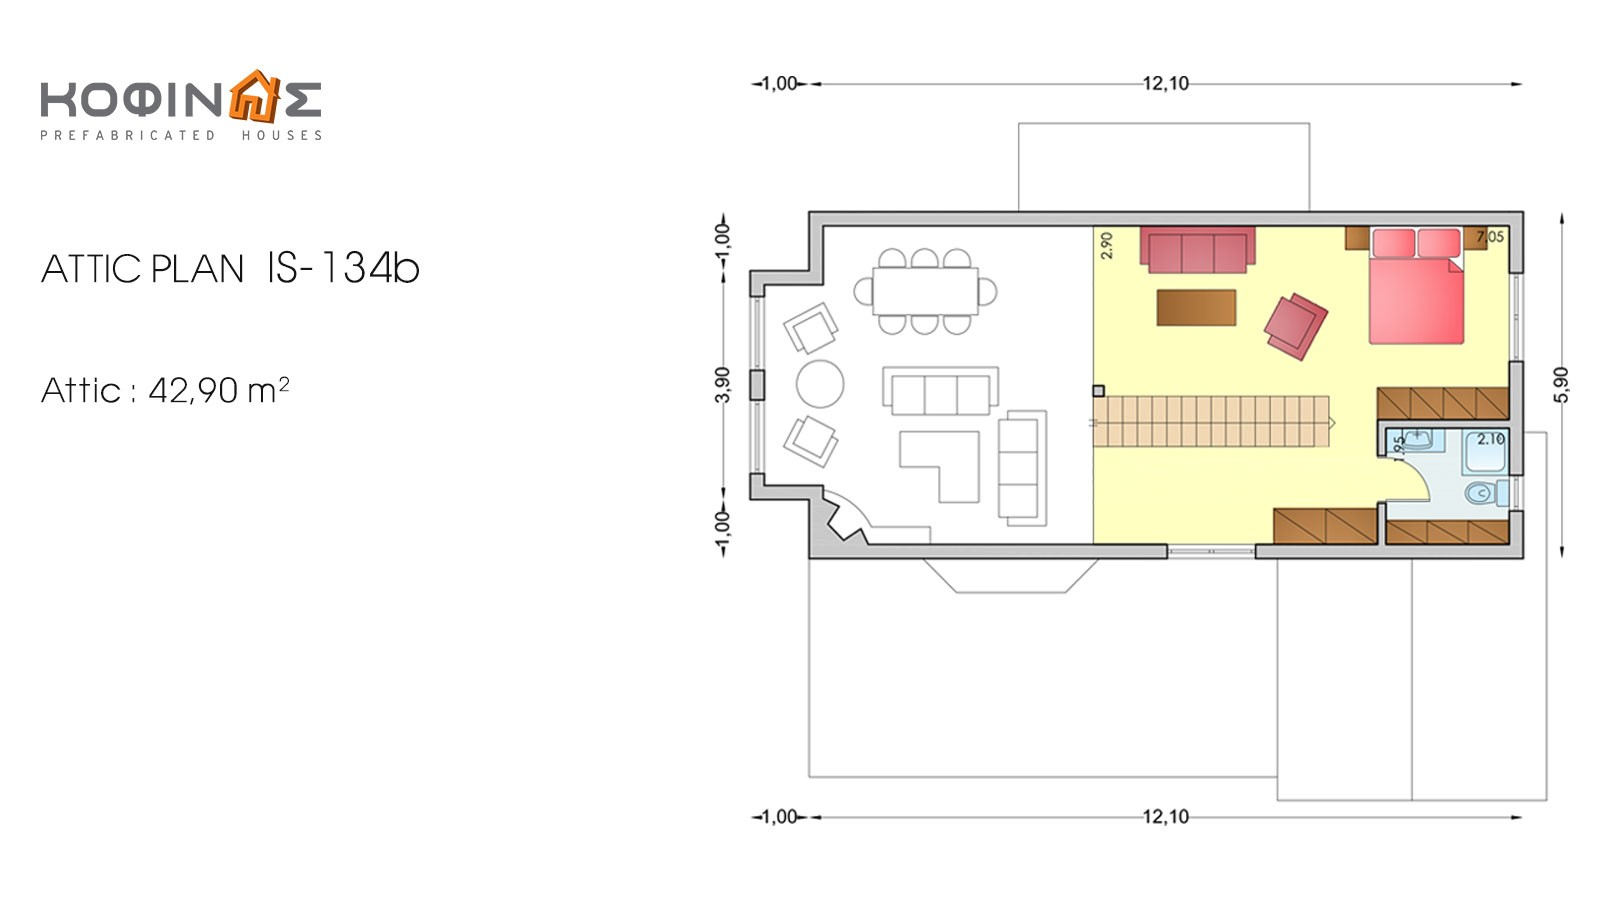 1-story house with attic IS-134b, total surface of 134,25 m²